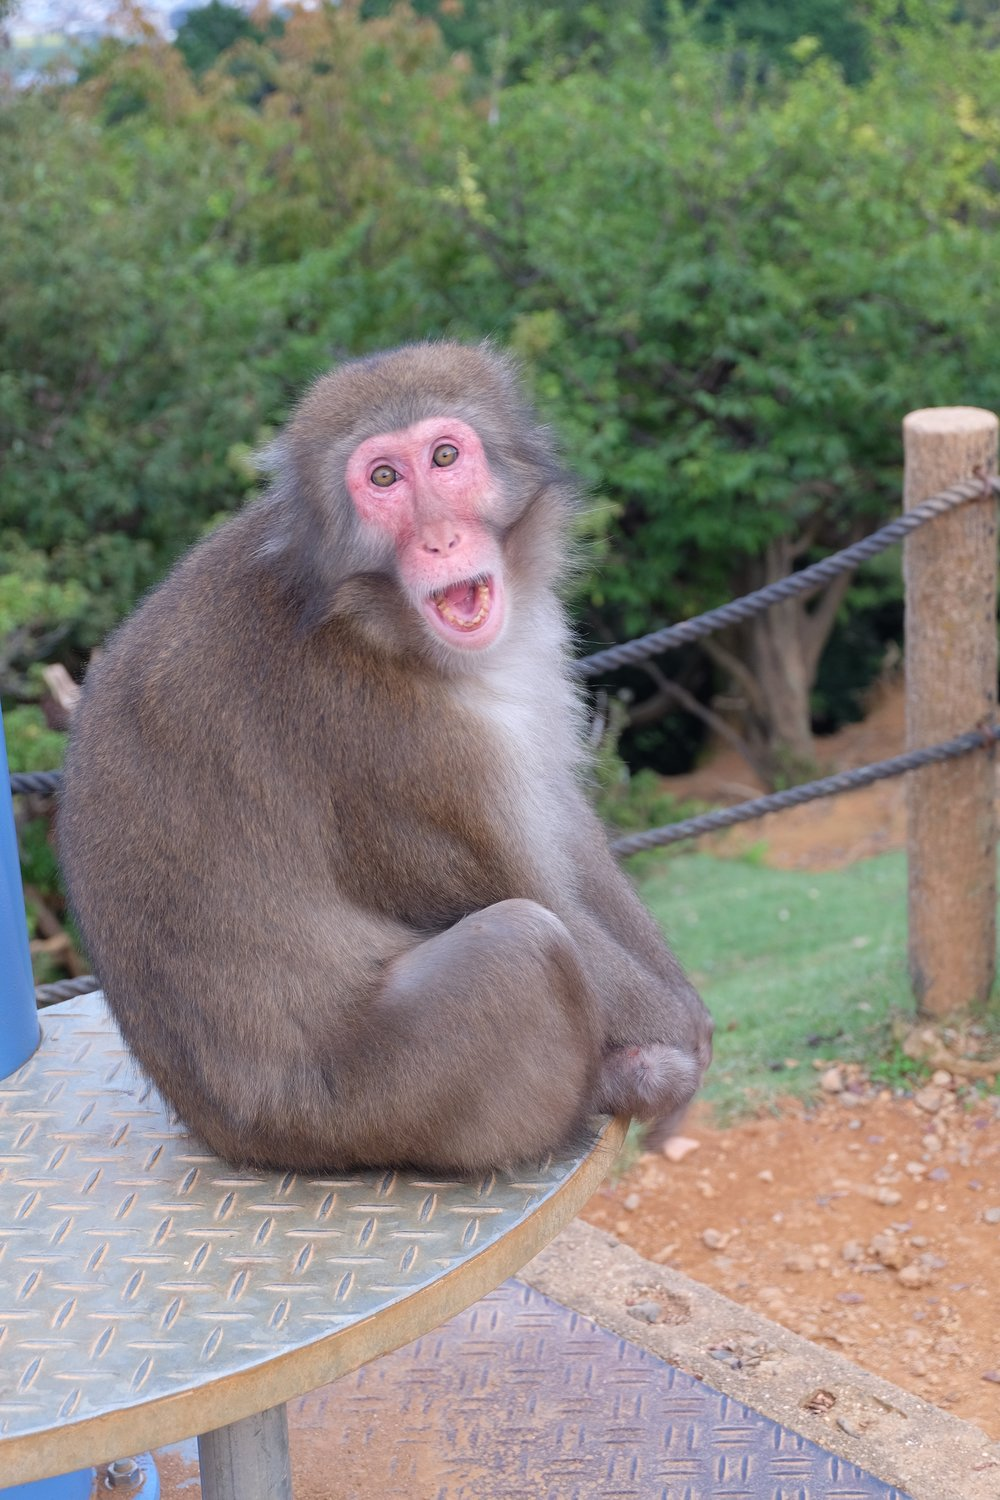 Meeting monkeys at Iwatayama